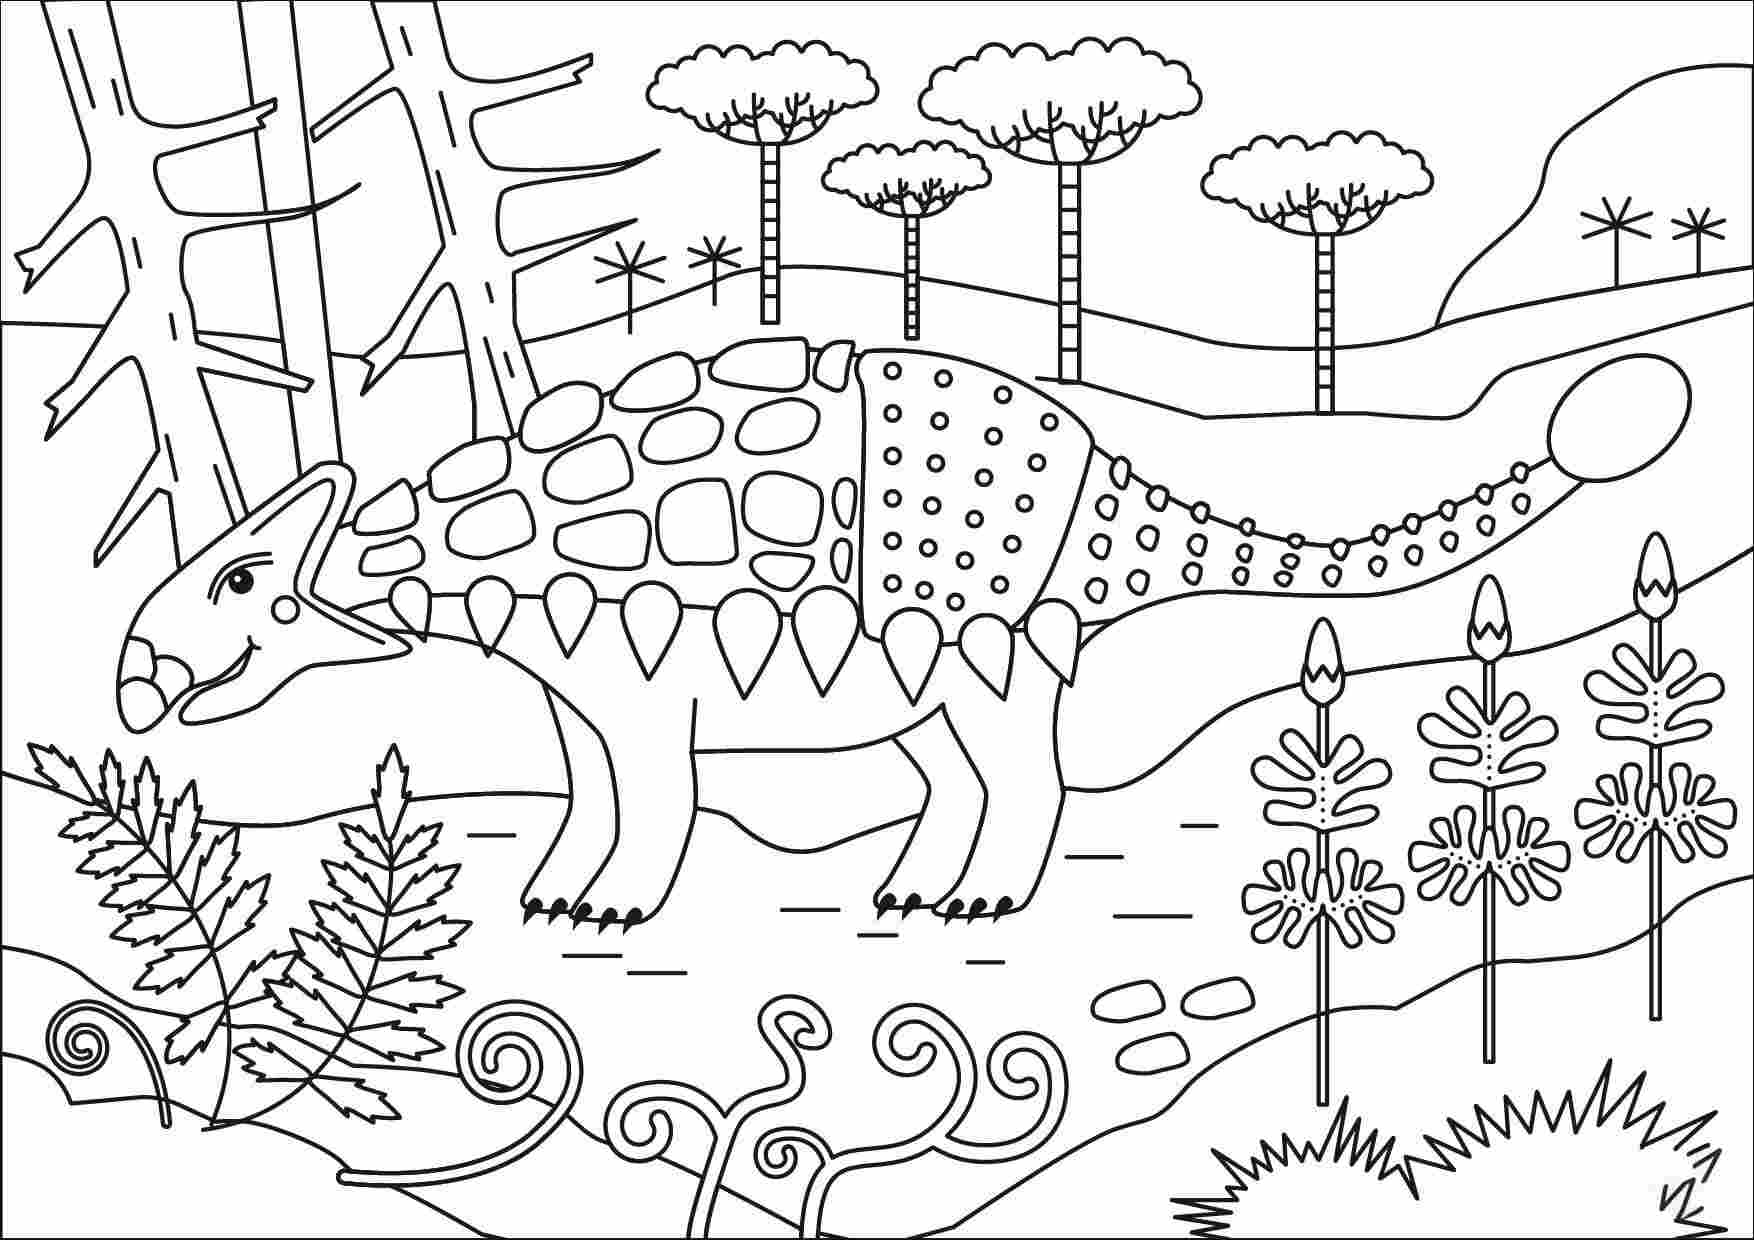 Drawing Ankylosaurus in the forest Coloring Page